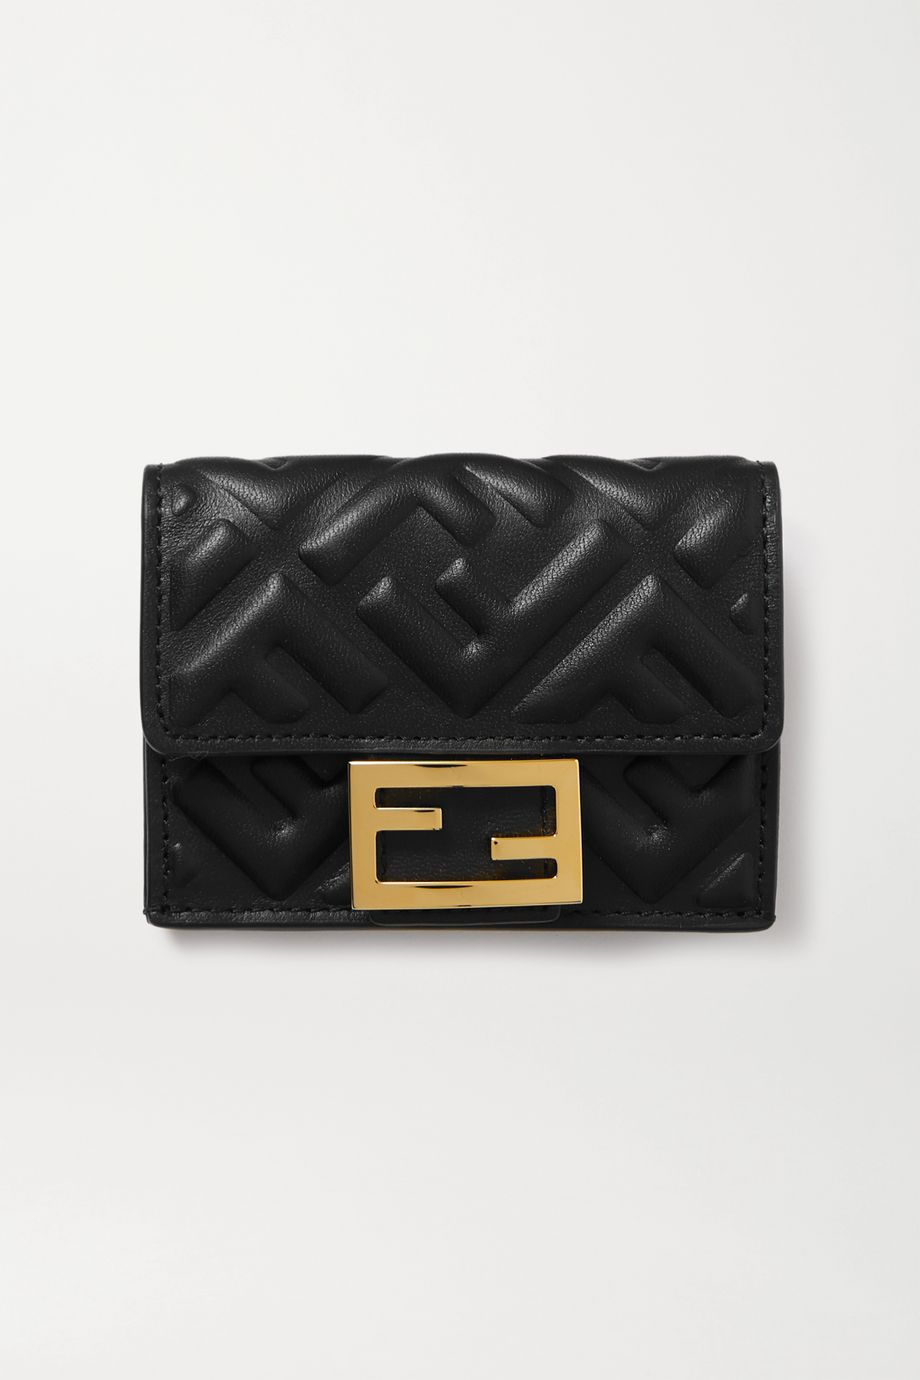 Fendi Embossed leather wallet